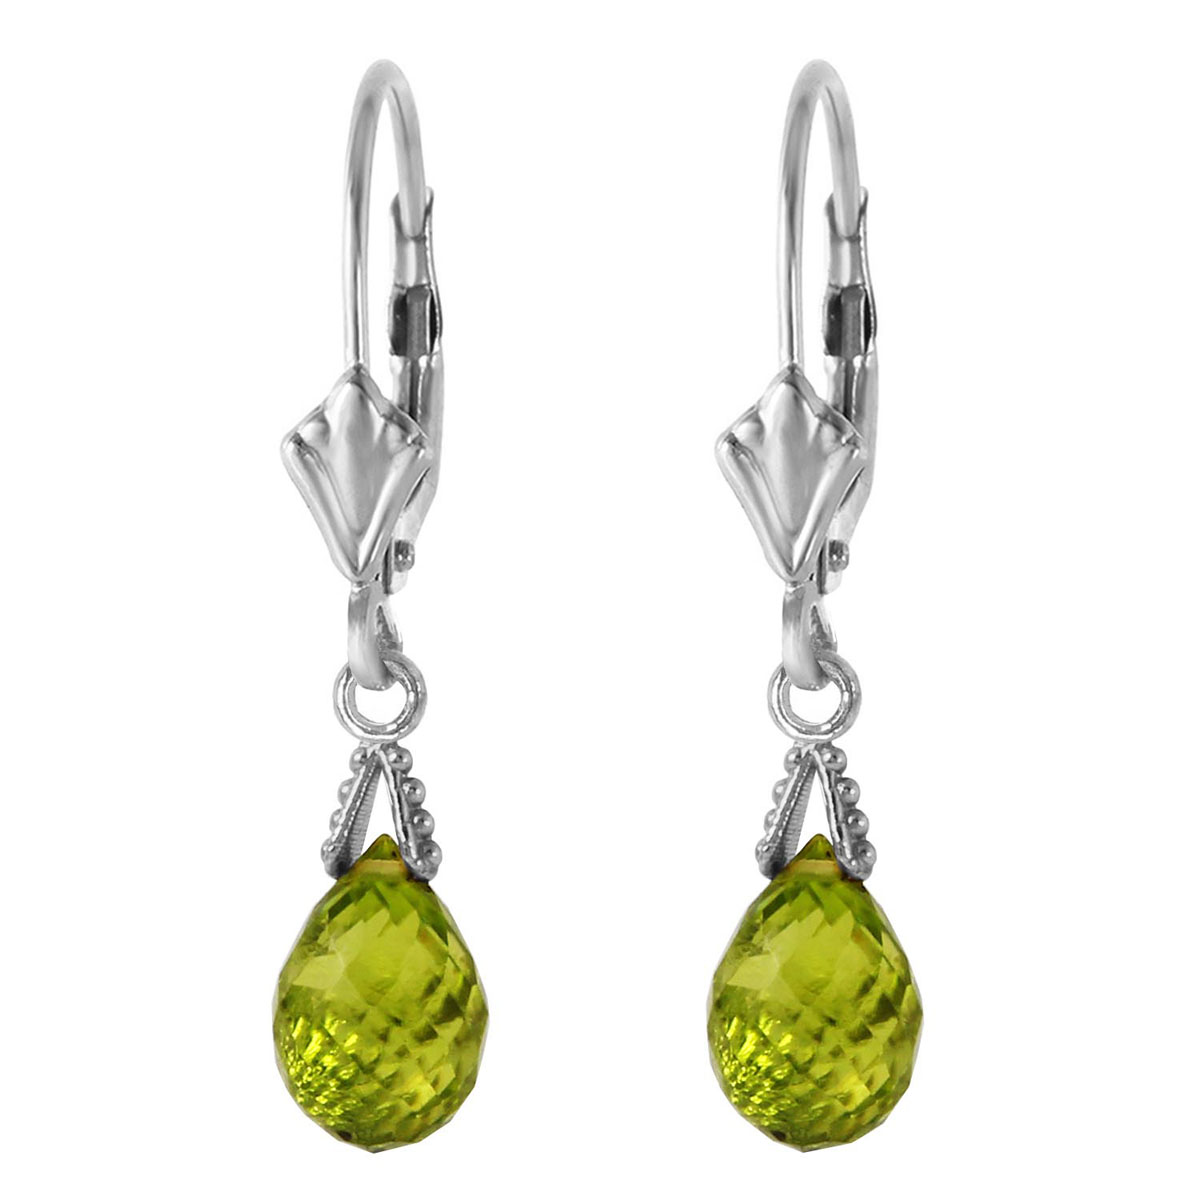 Peridot Droplet Earrings 4.5 ctw in 9ct White Gold